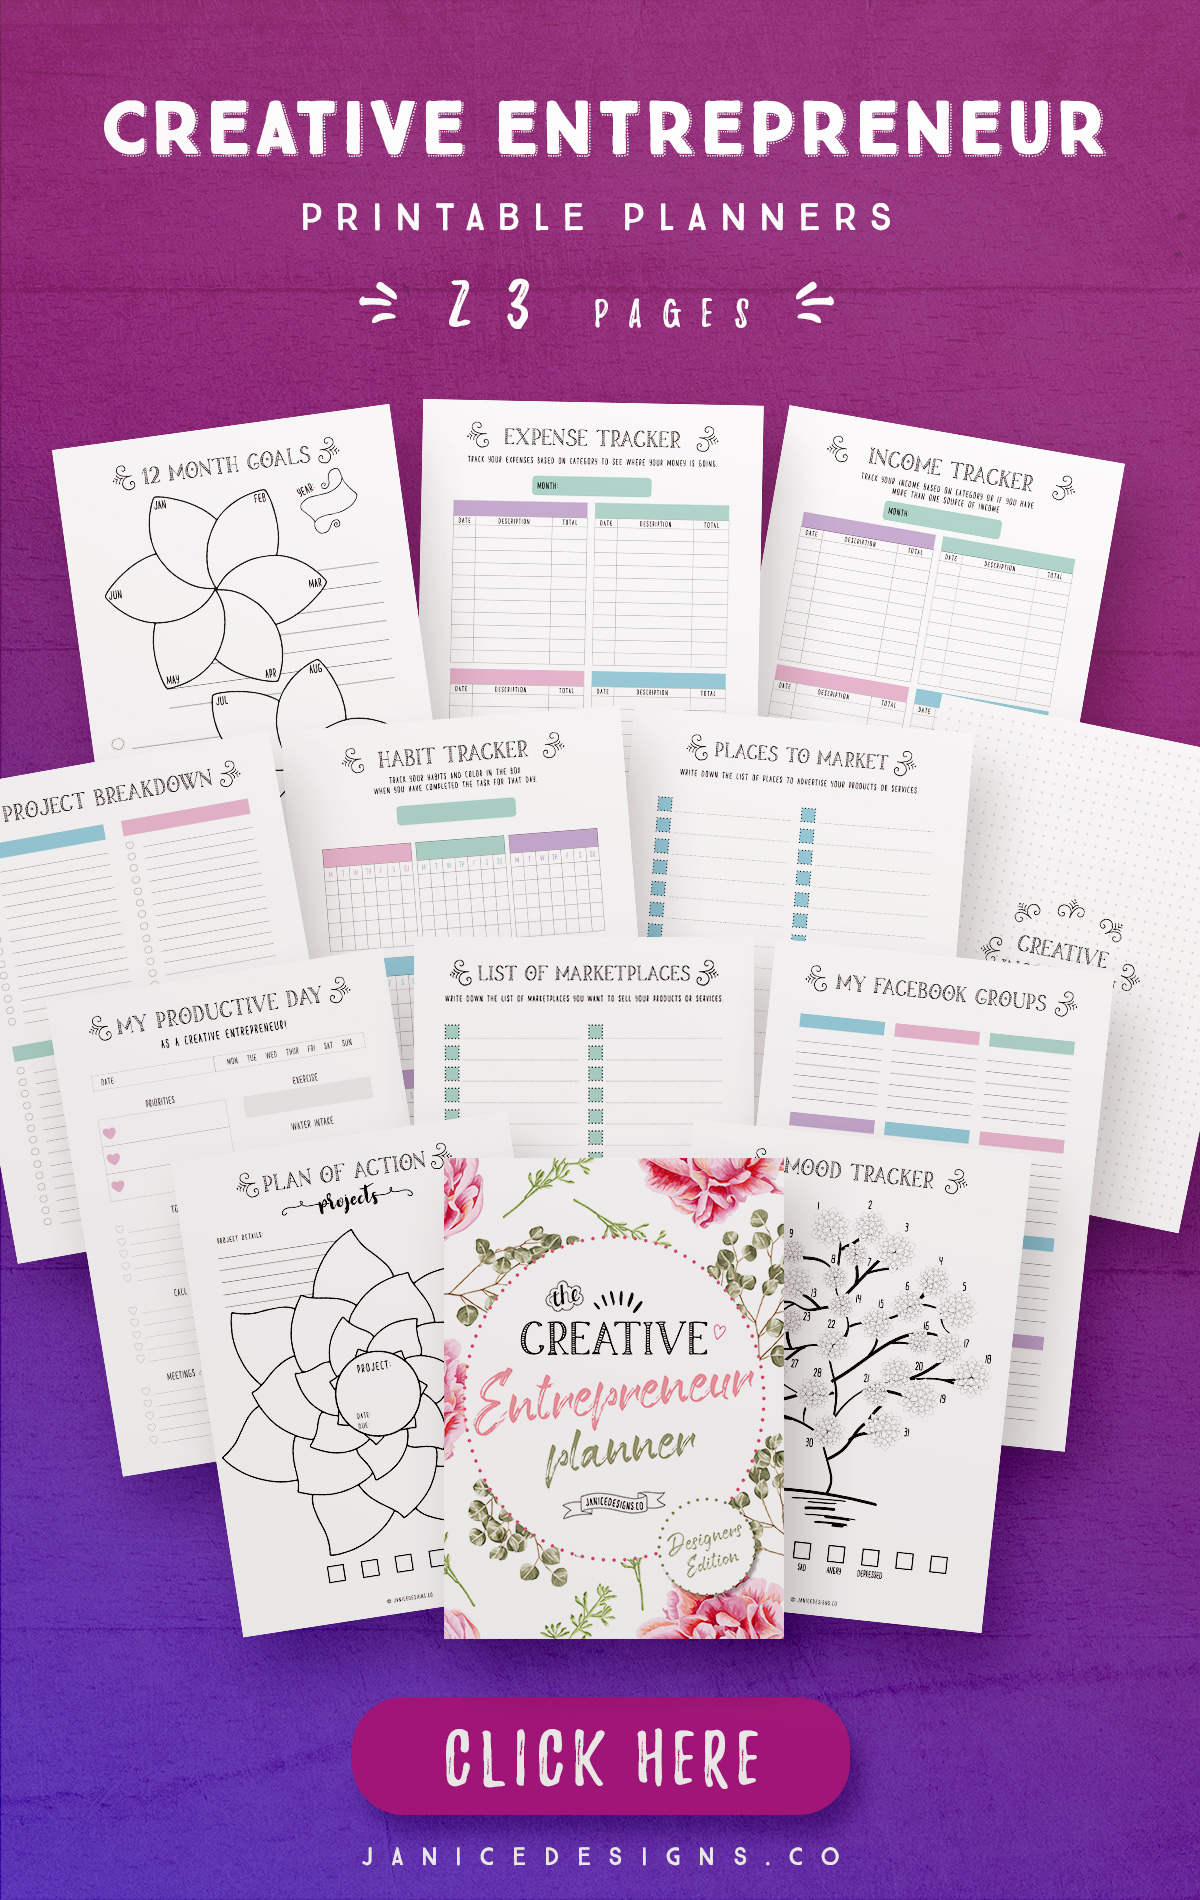 Creative Entrepreneur Printable Planners - 23 Pages example image 2